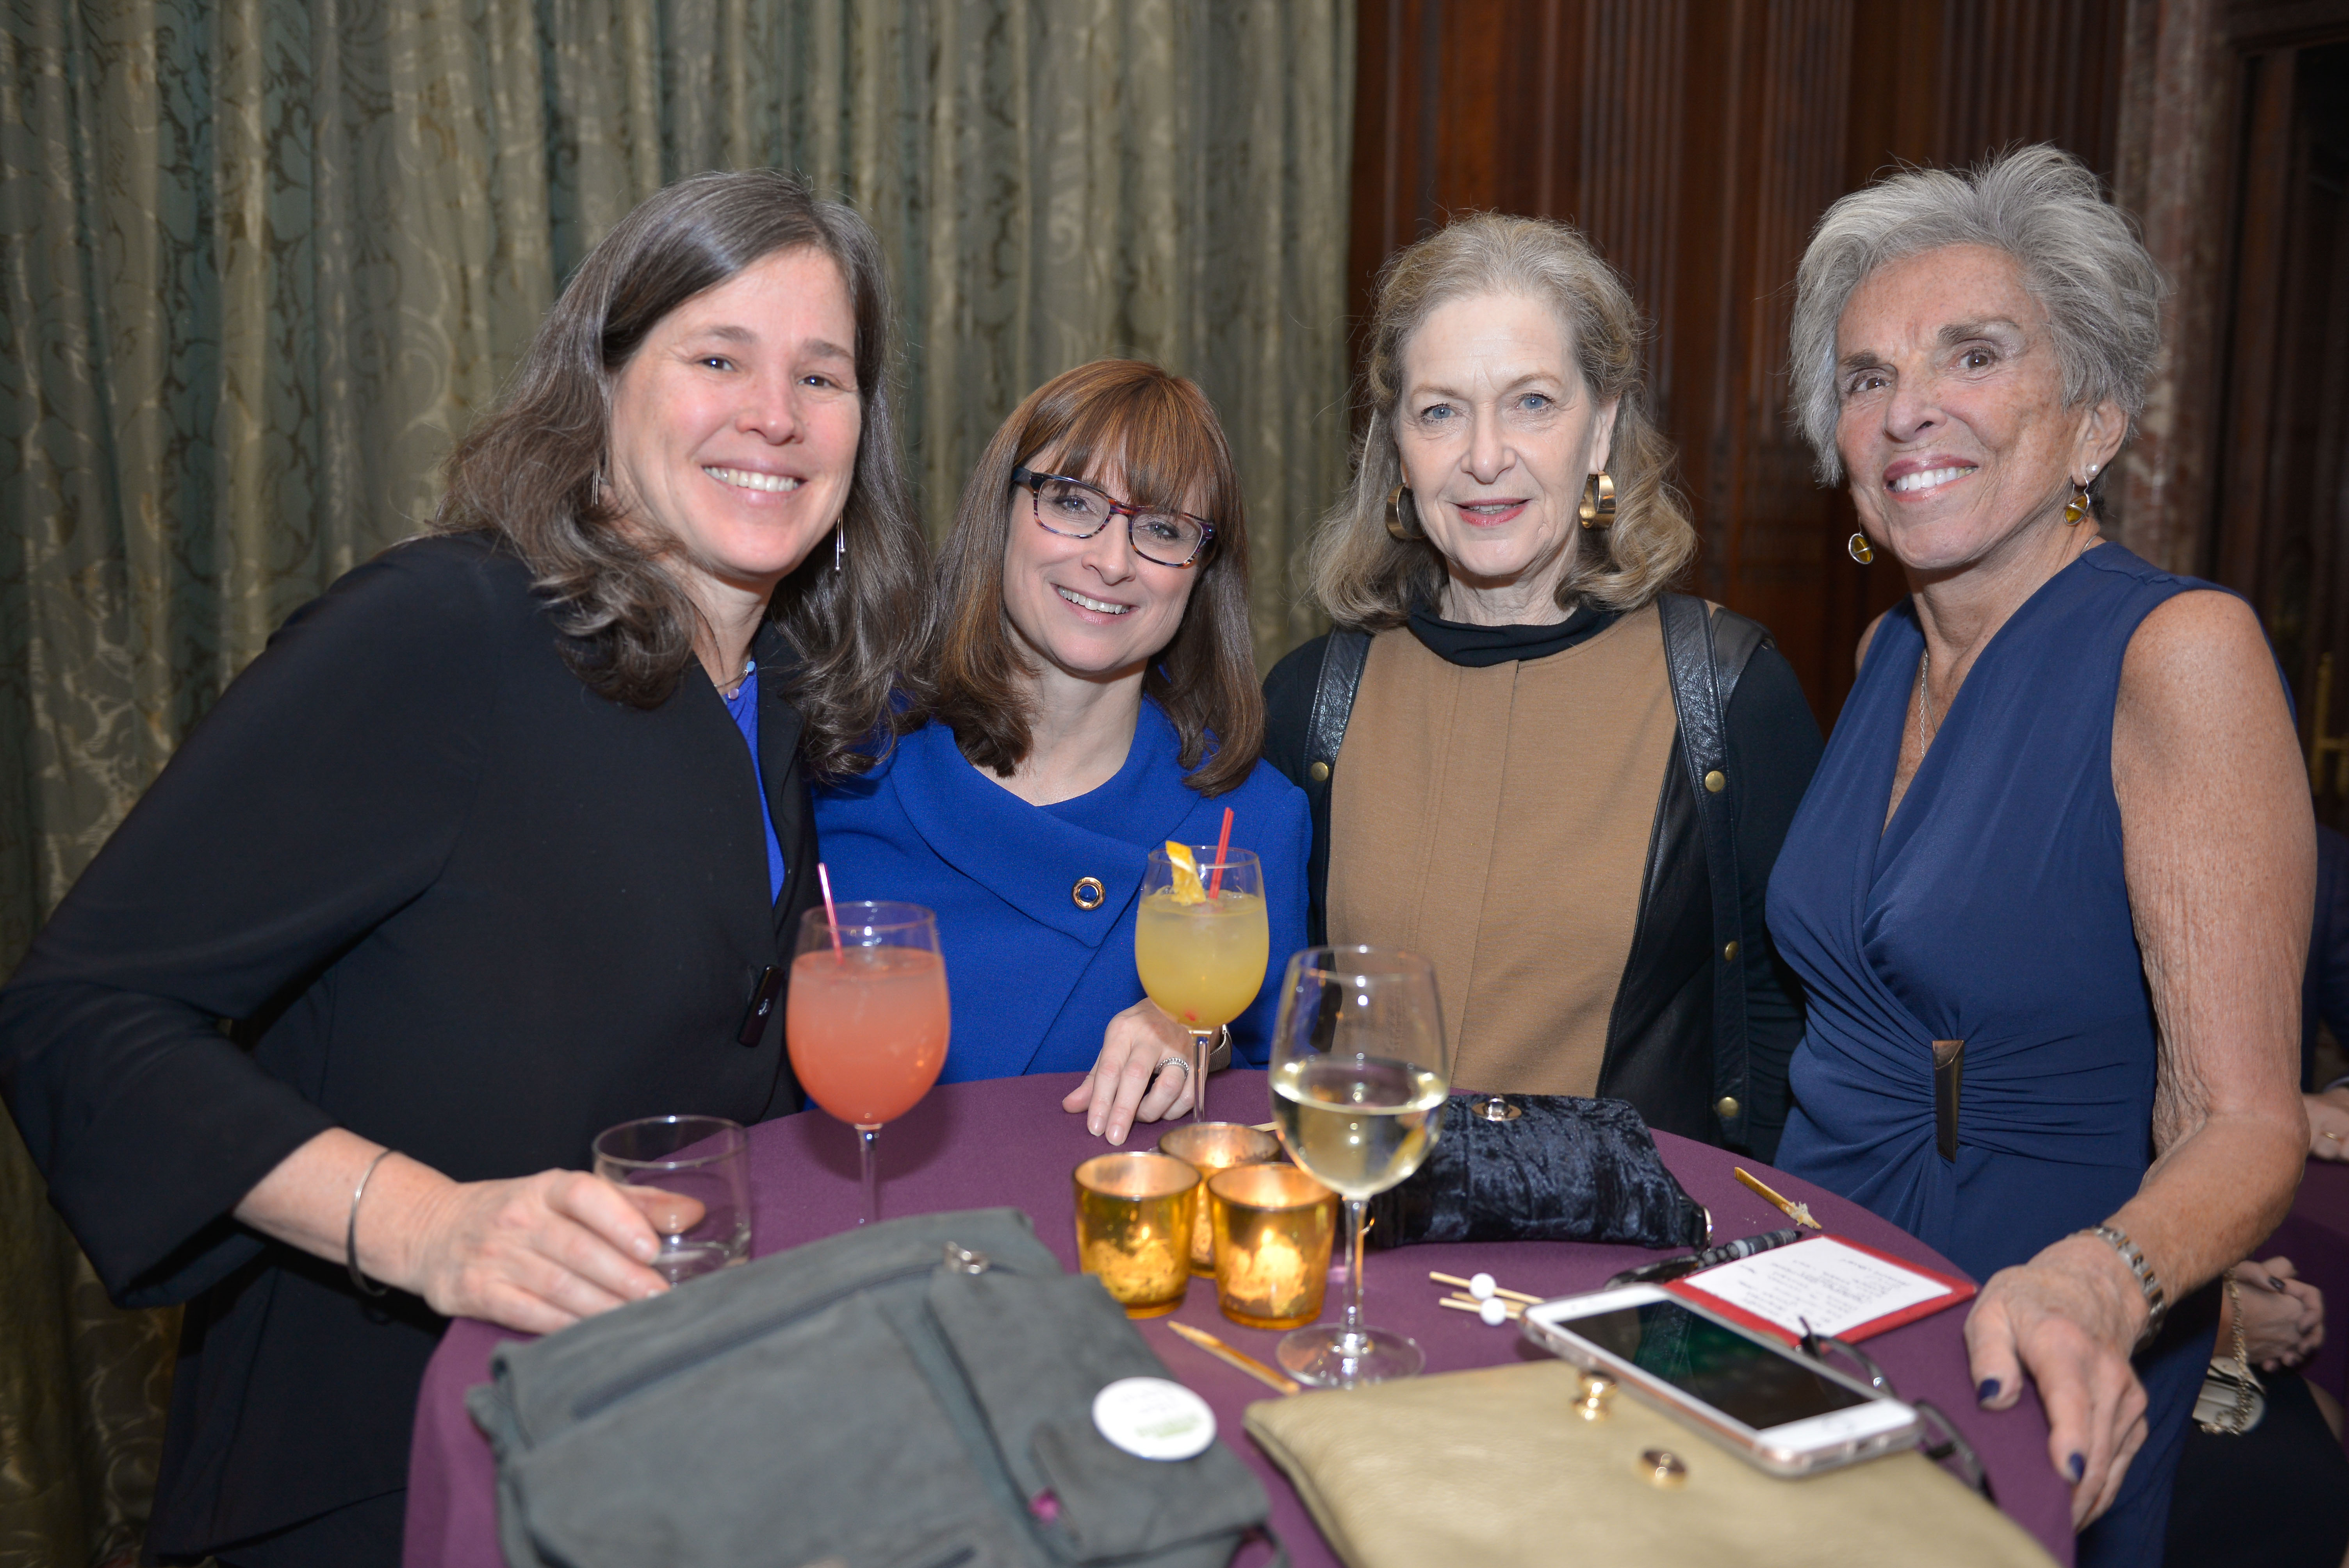 From left: 2015 Covenant Award Recipient Amy Meltzer, 2009 Covenant Award Recipient Dr. Erica Brown, Arnee Winshall, and Judy Meltzer.